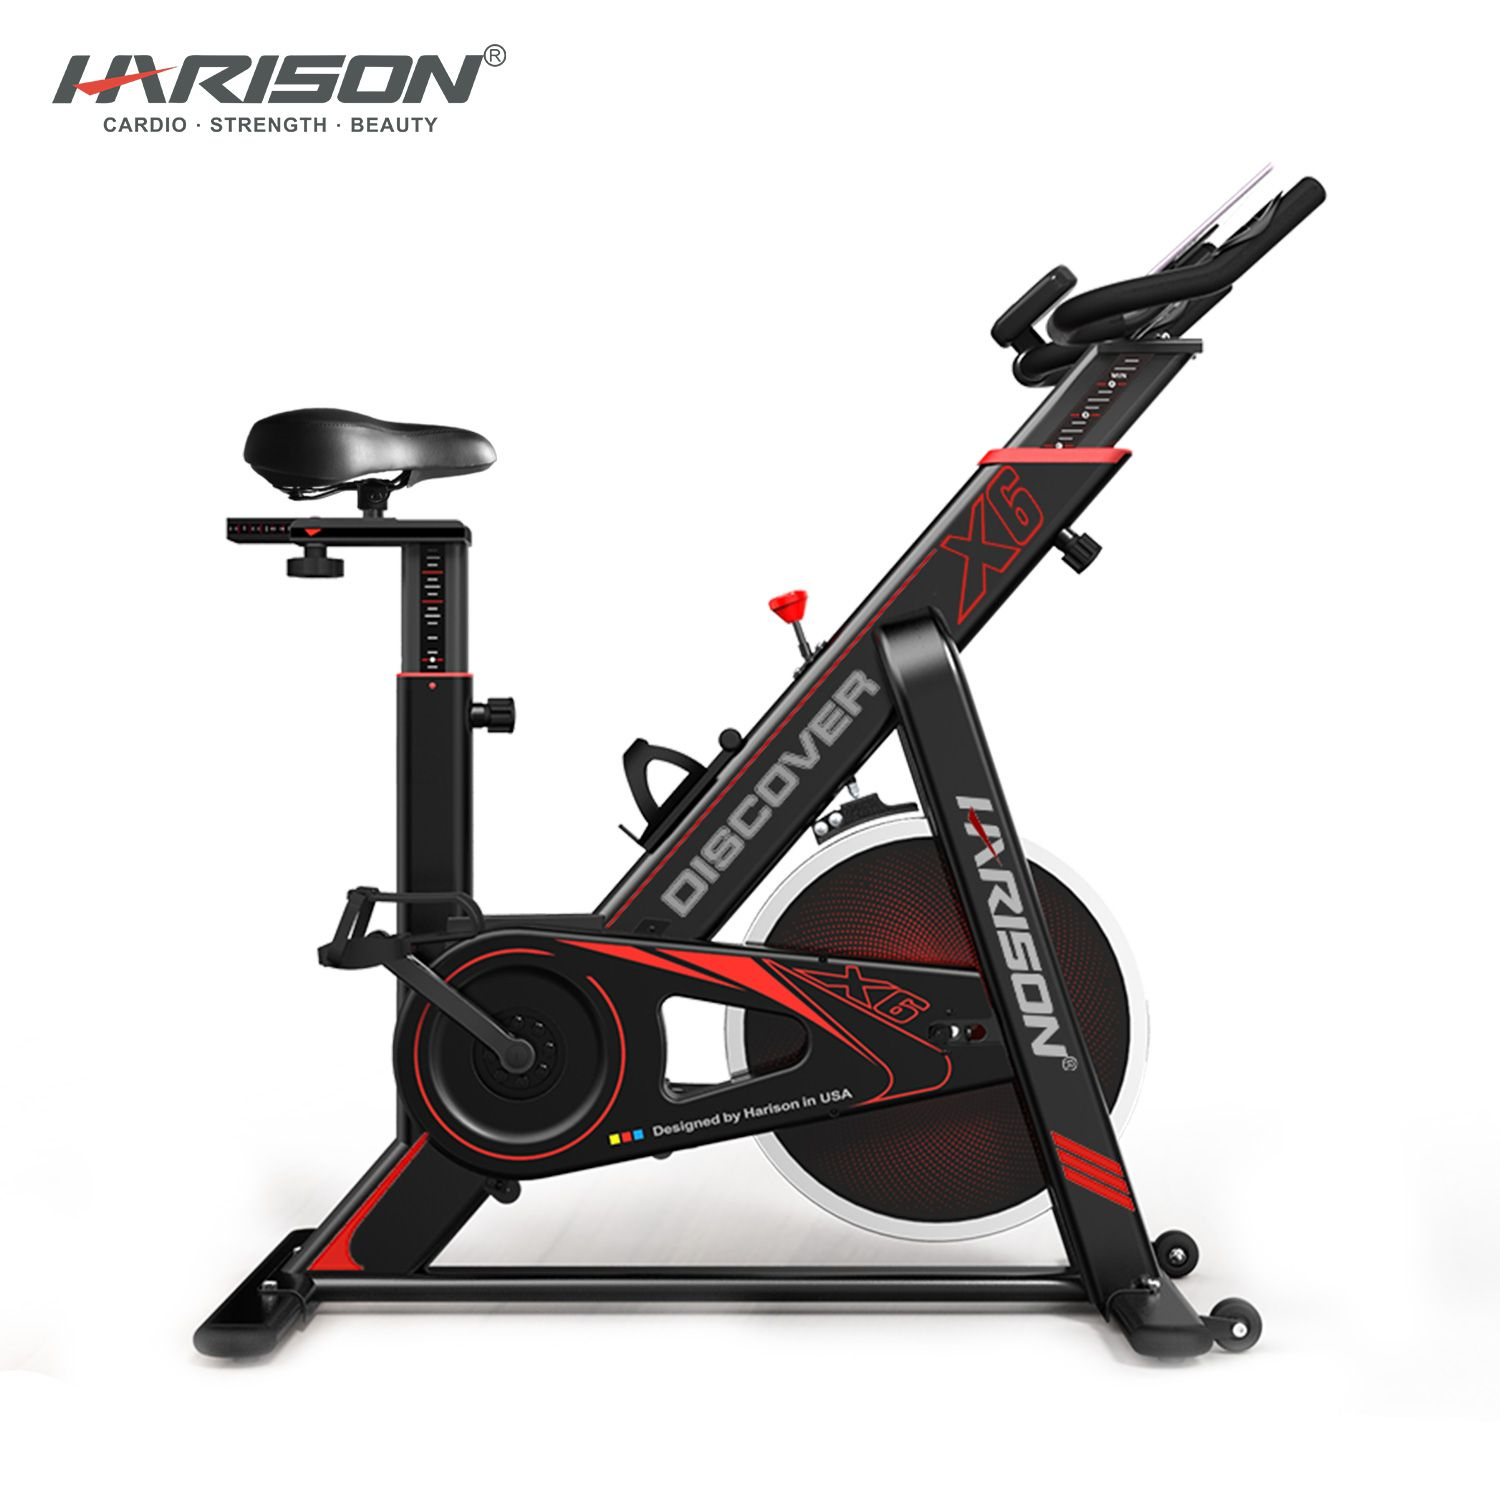 Harison X6 Exercise Bike For Home Workout Biking Workout